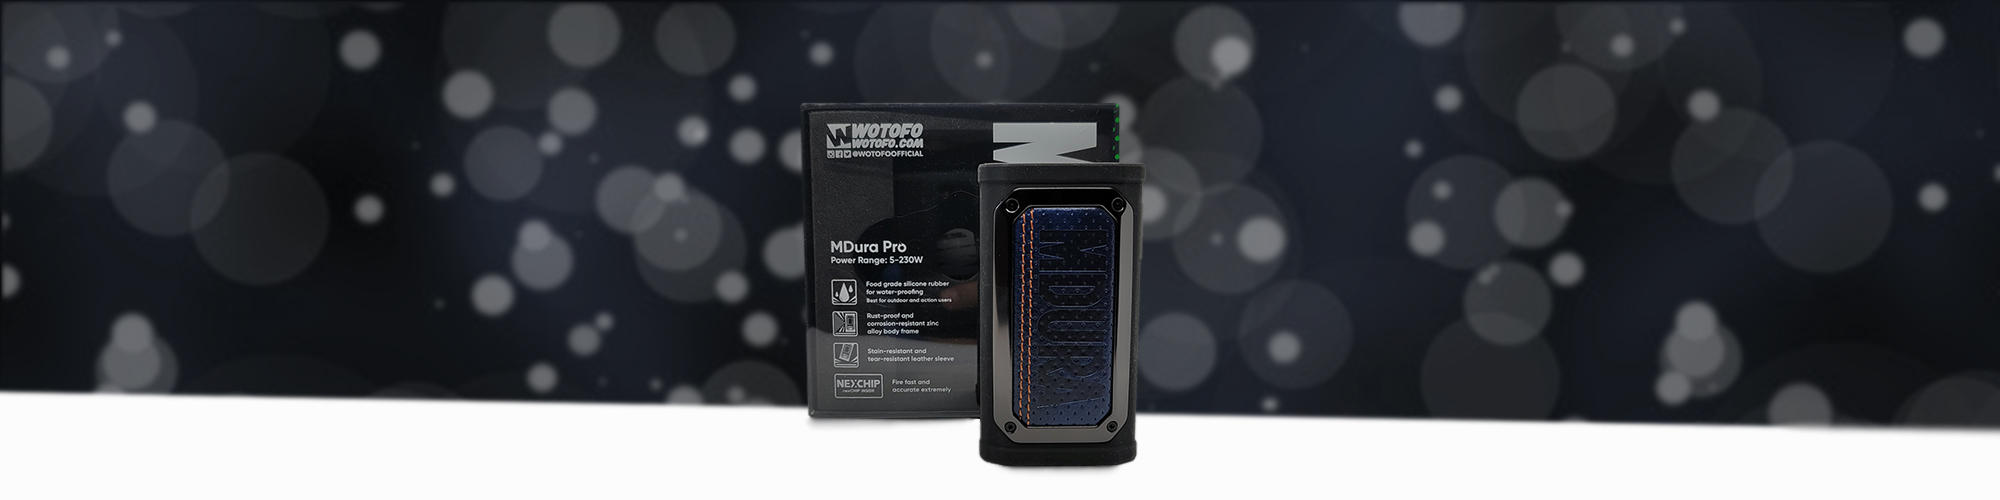 Wotofo MDura Pro Review Main Banner